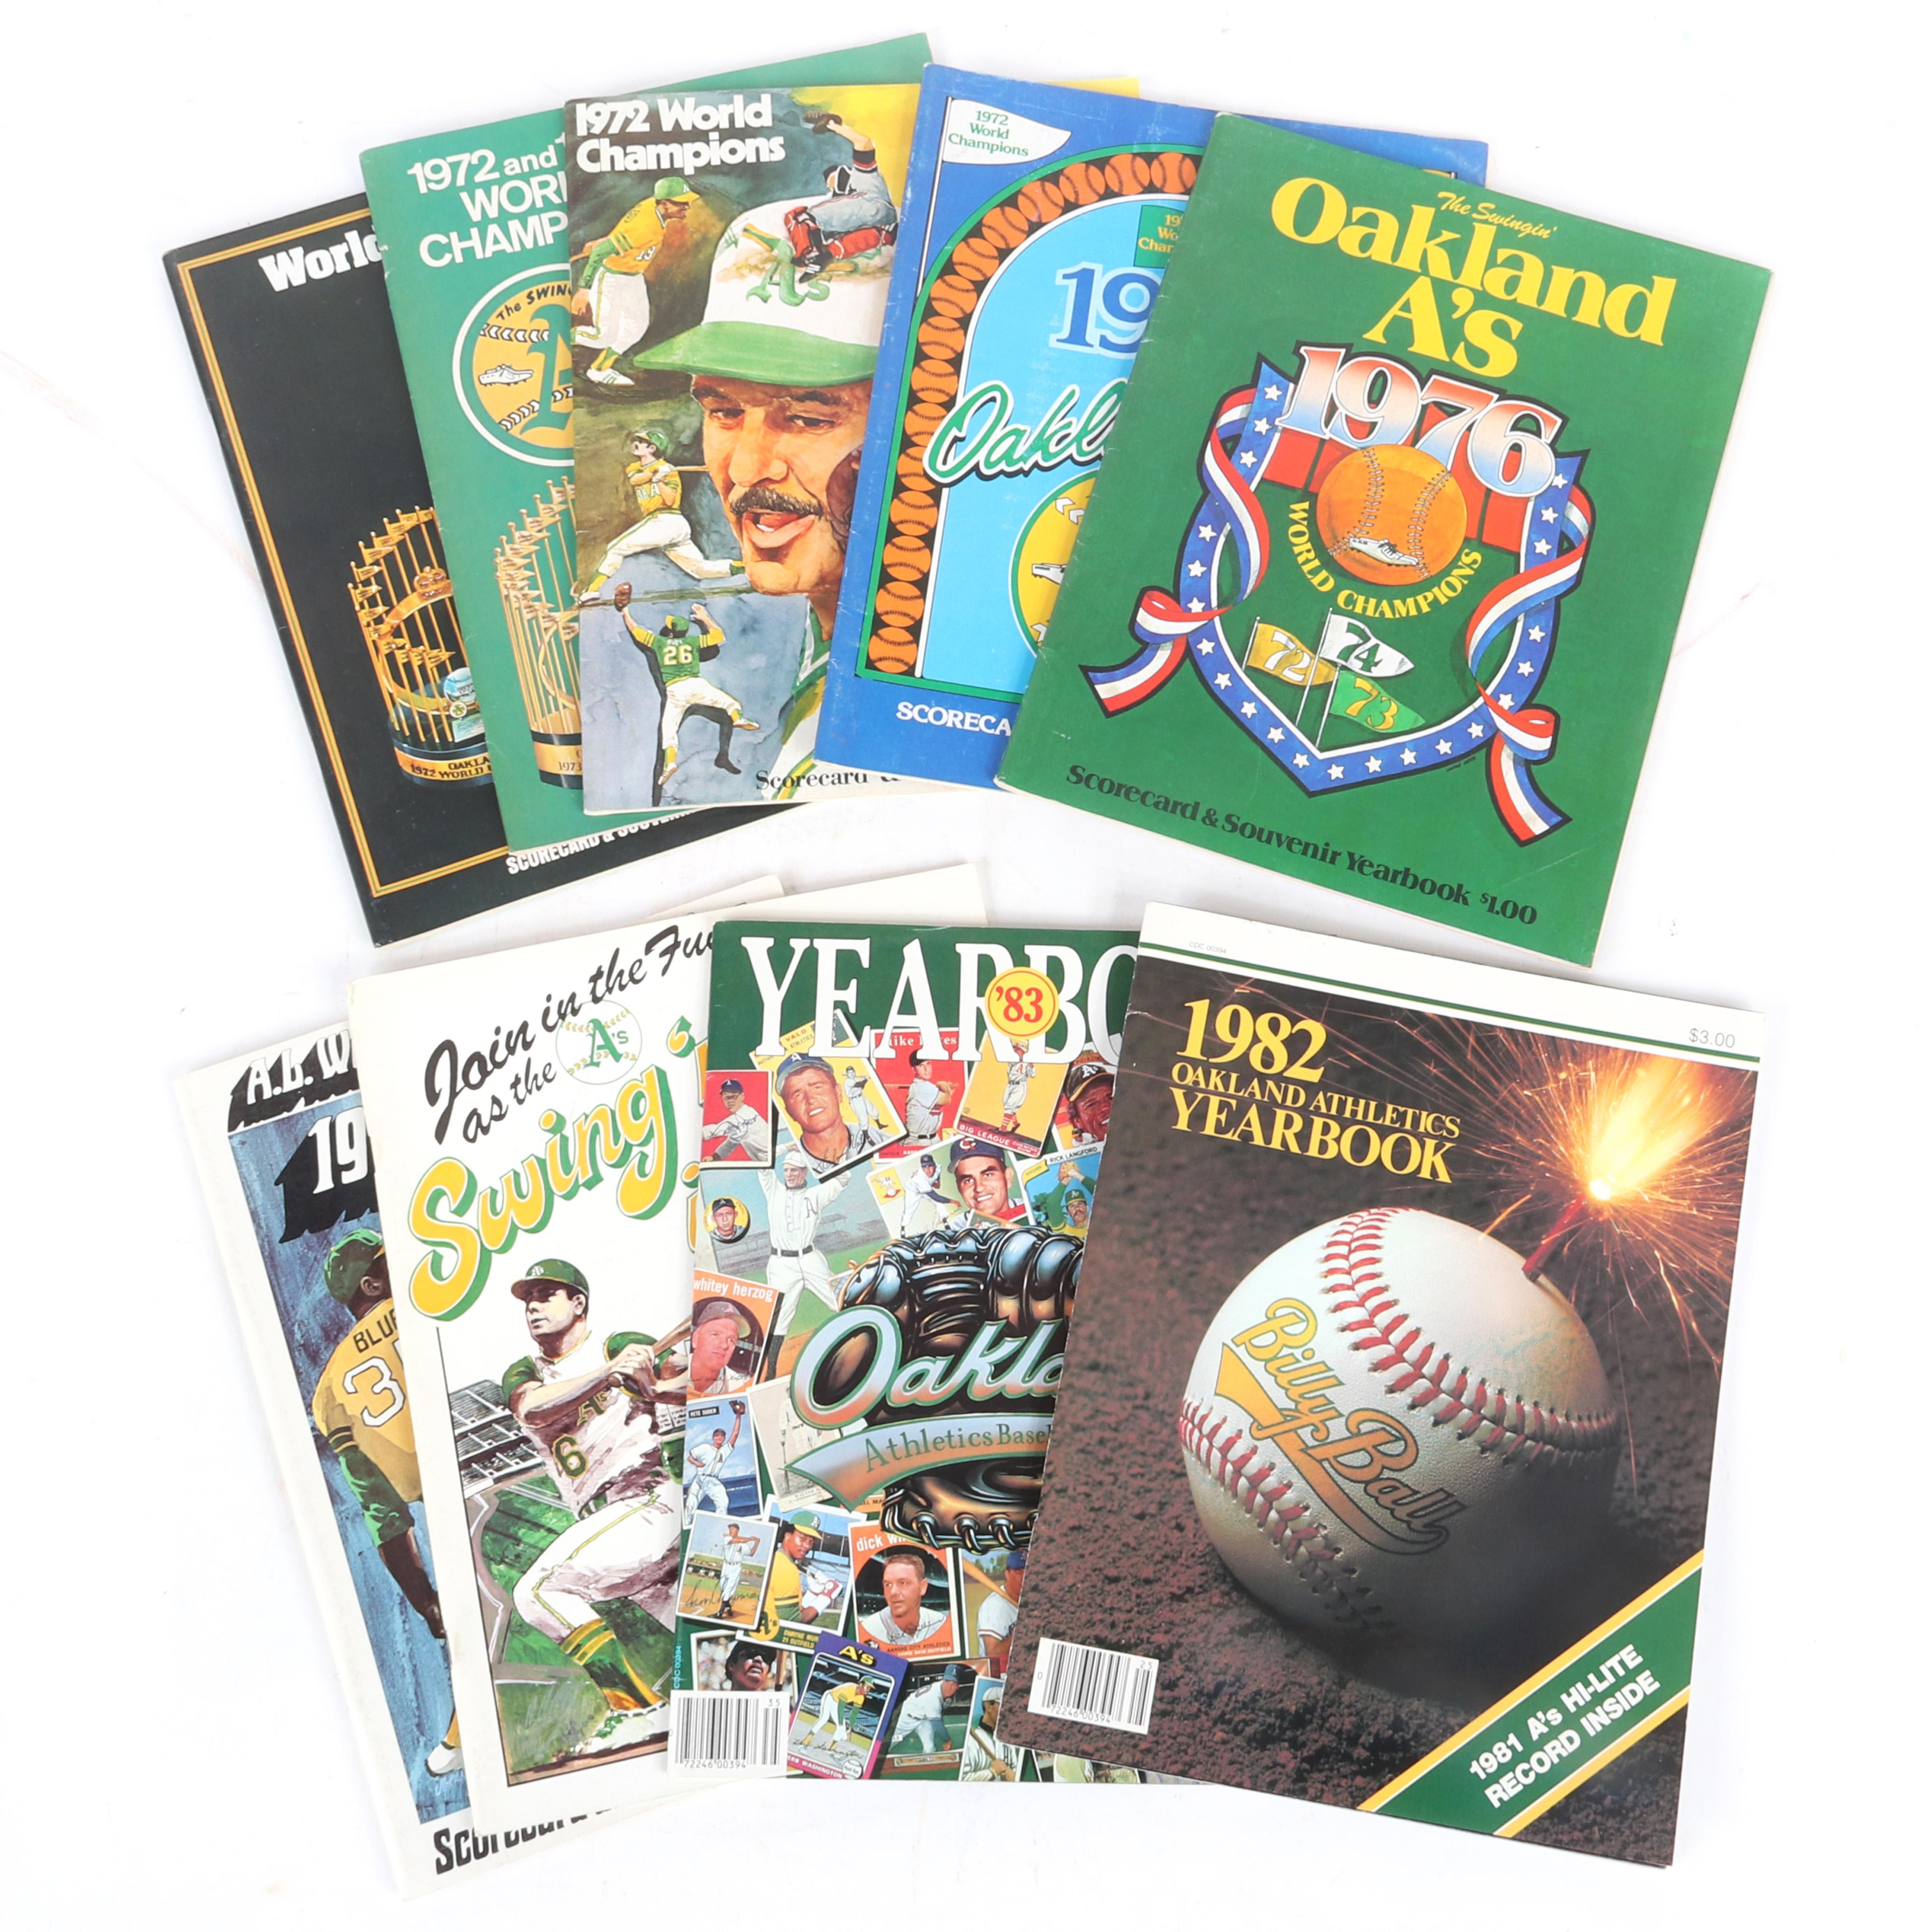 9 Oakland A's Yearbooks